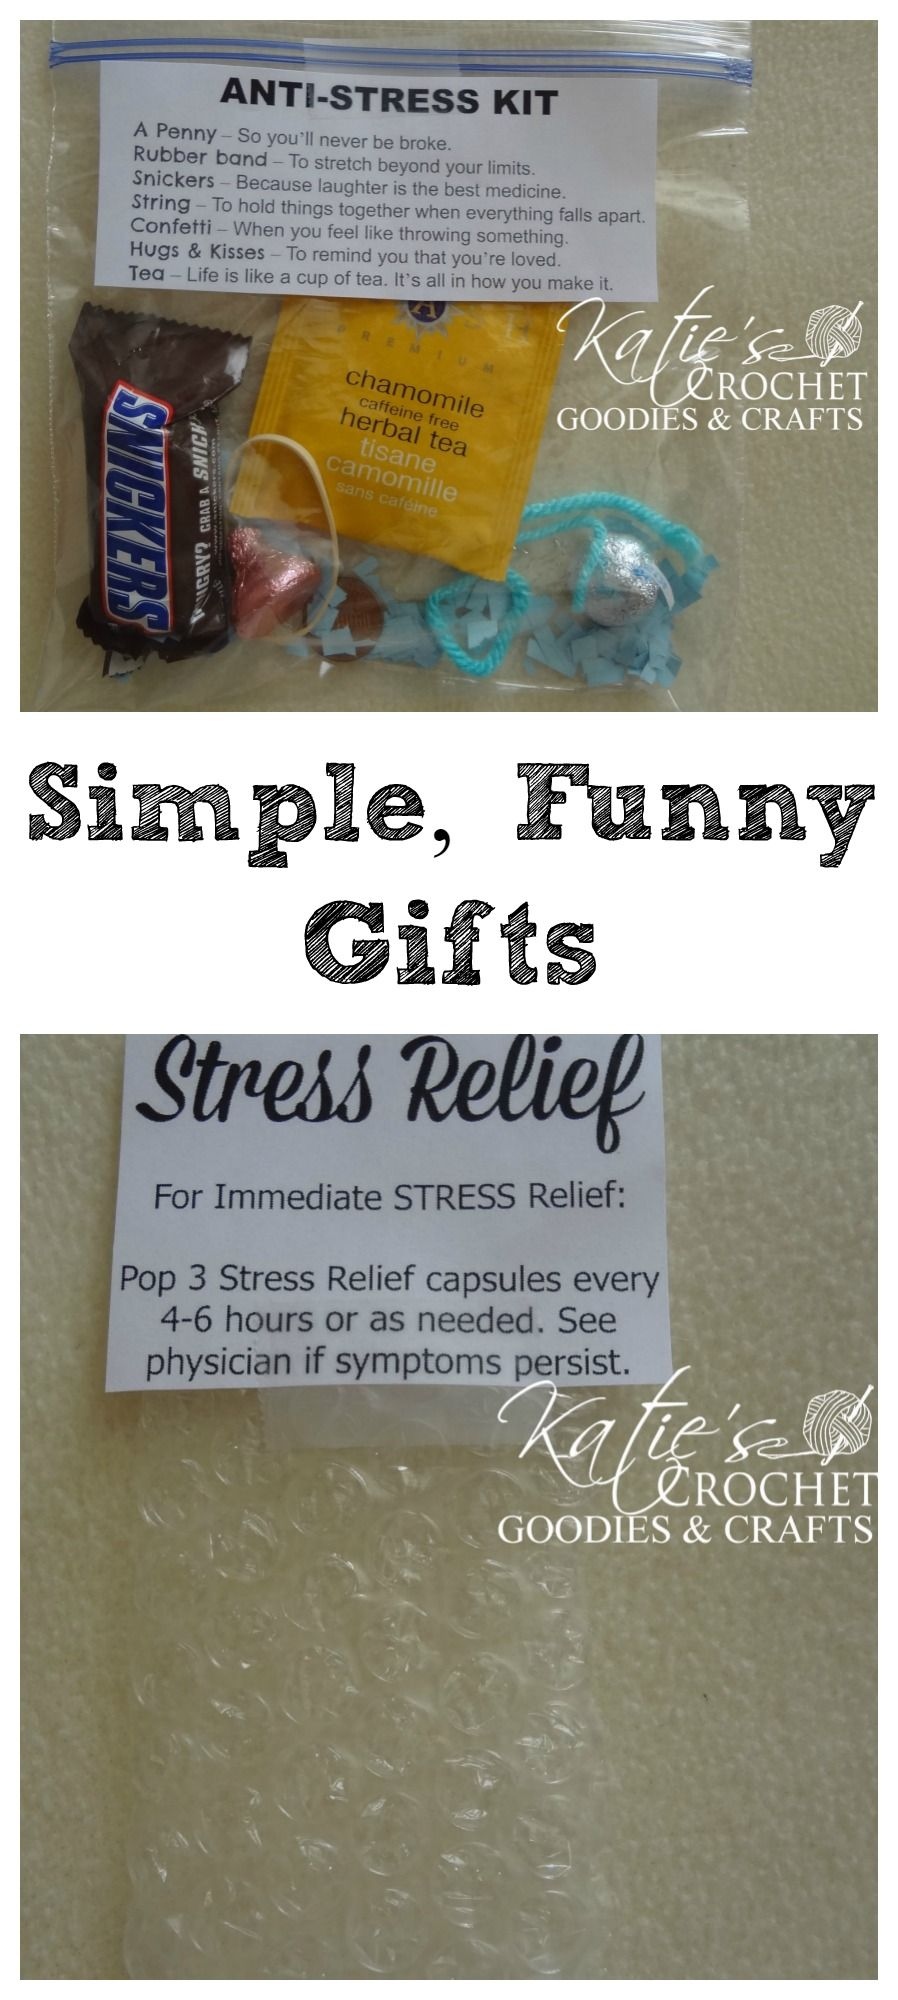 Funny Stress Relief Gifts Katie S Crochet Goodies Crafts